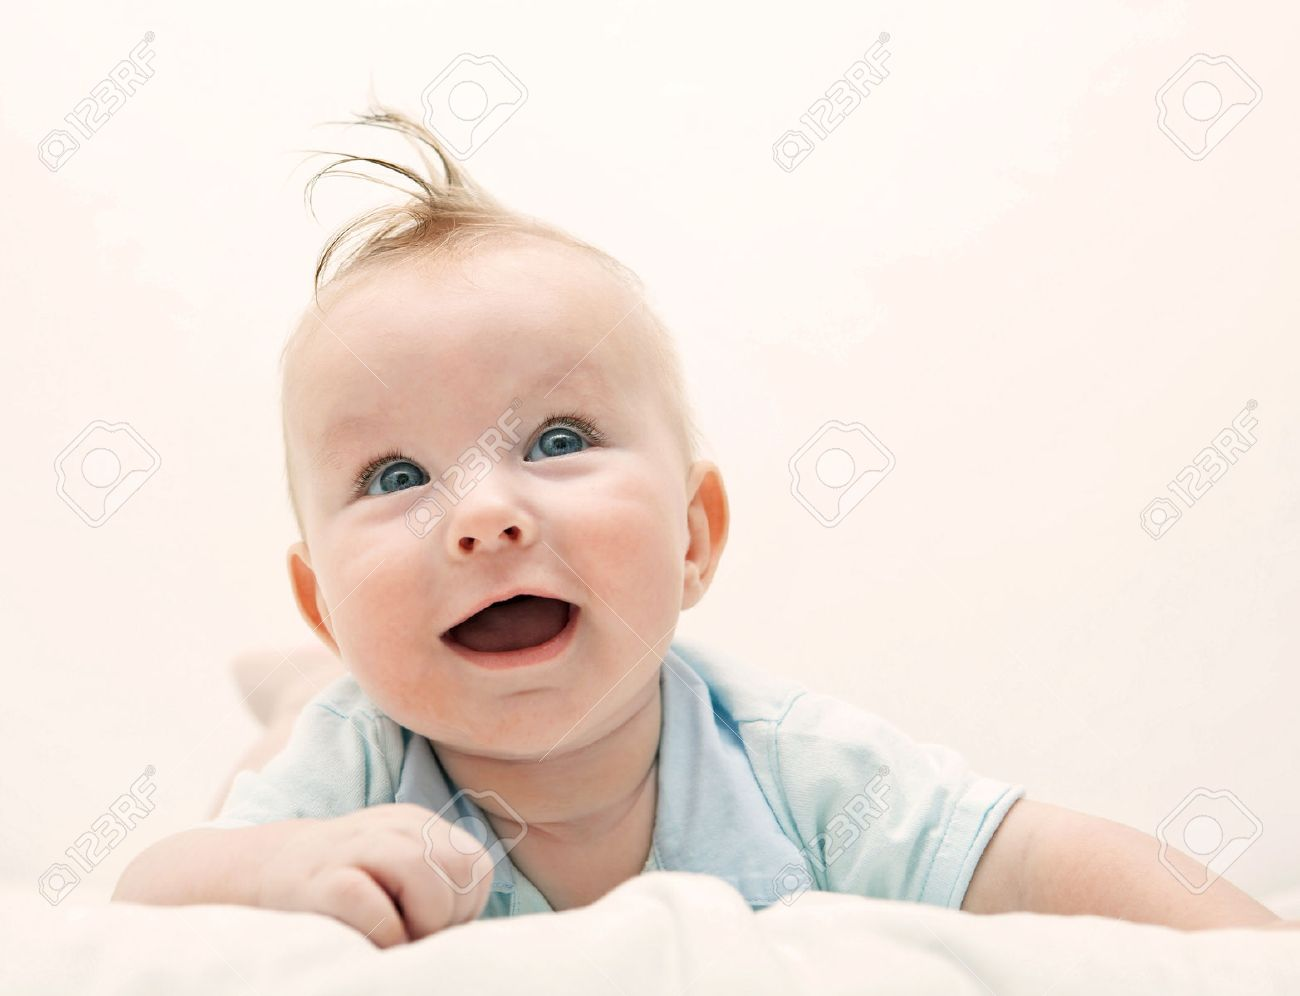 portrait of a smiling babies Stock Photo - 25887202